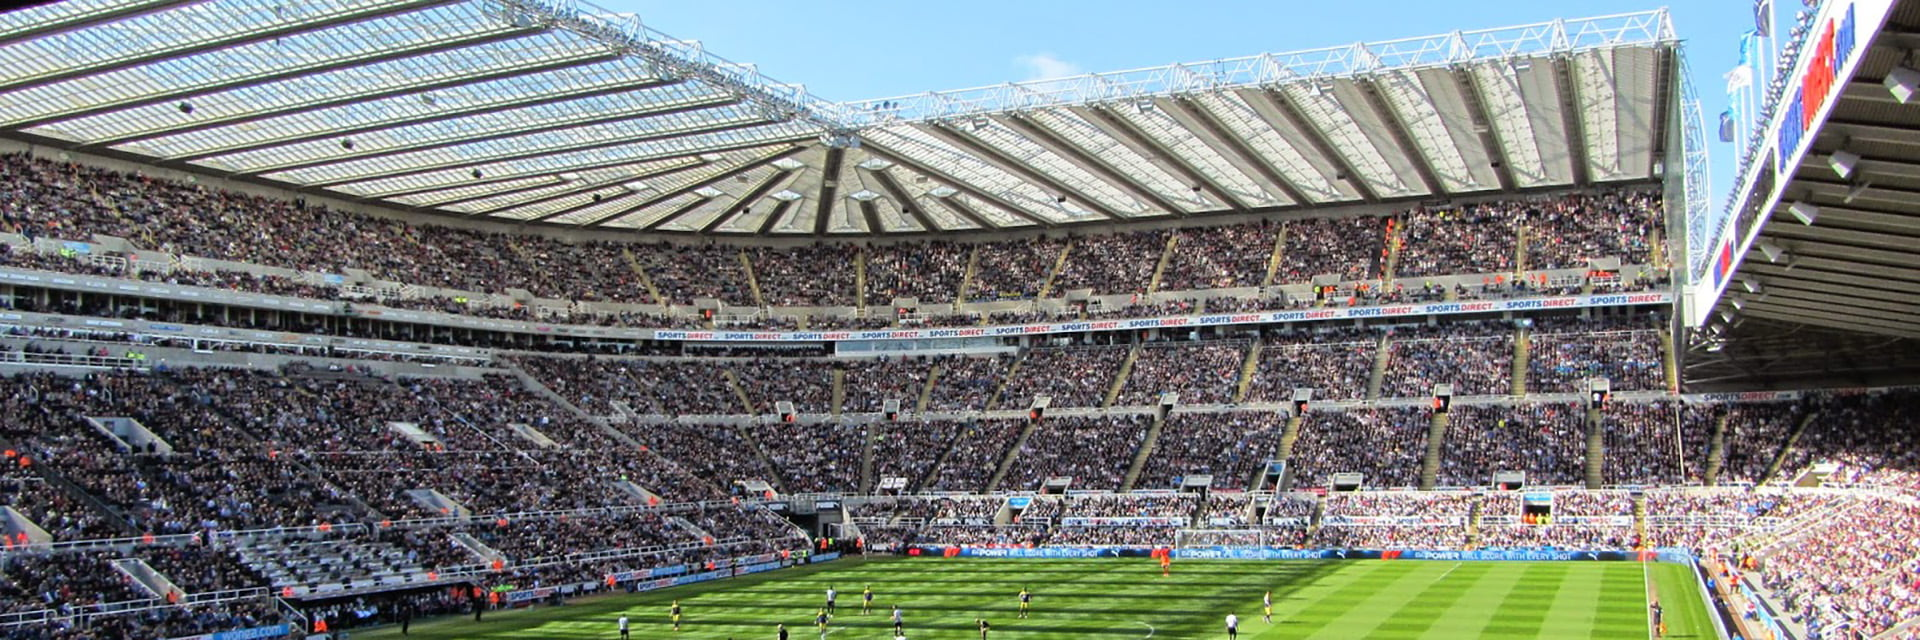 Newcastle United - Crystal Palace, 6 Dezemberum 15:00